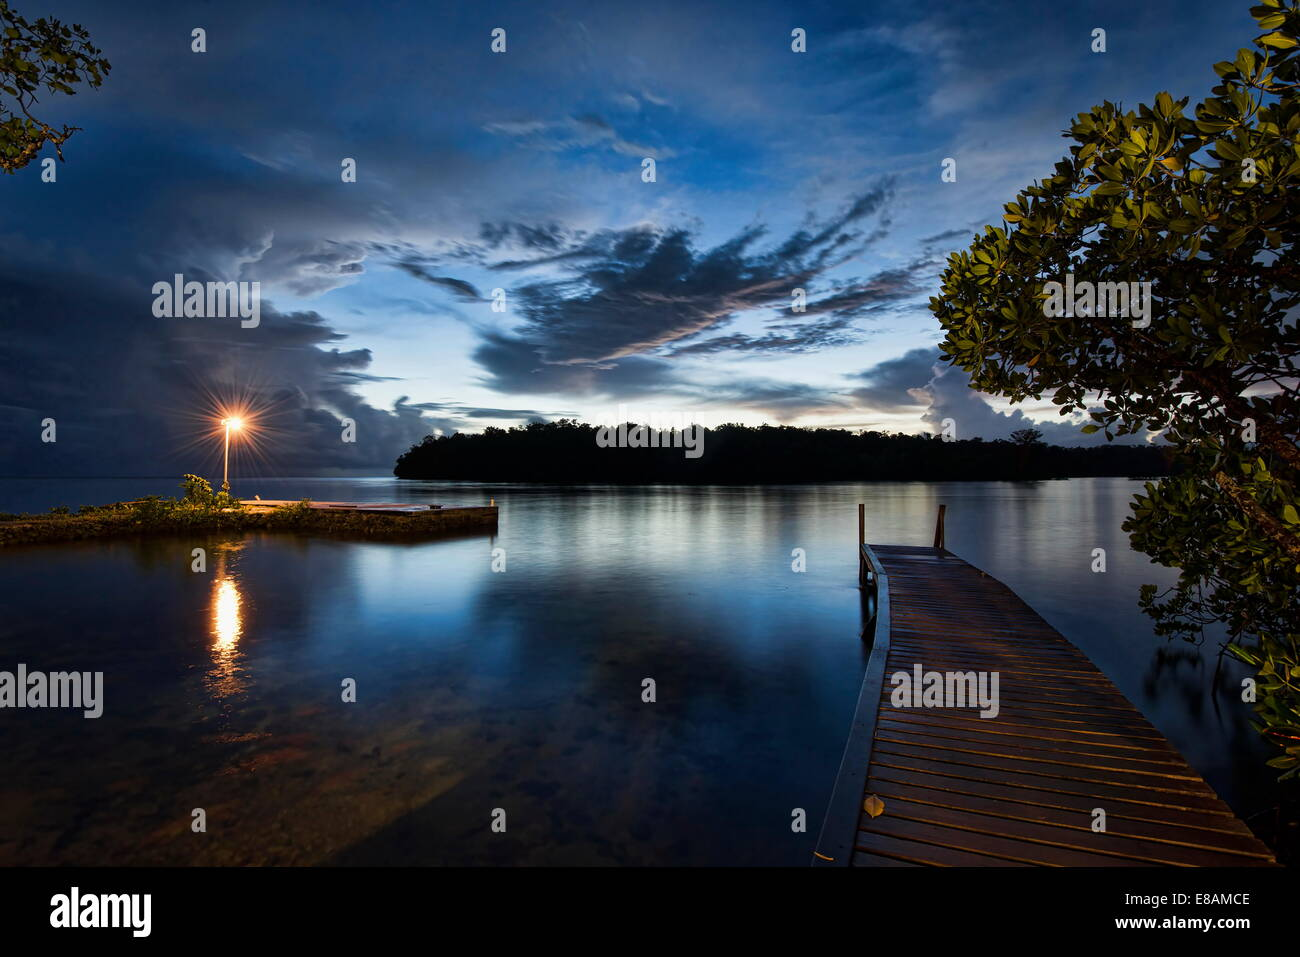 Jetty at dawn, Uepi Island, New Britain, Solomon Islands - Stock Image